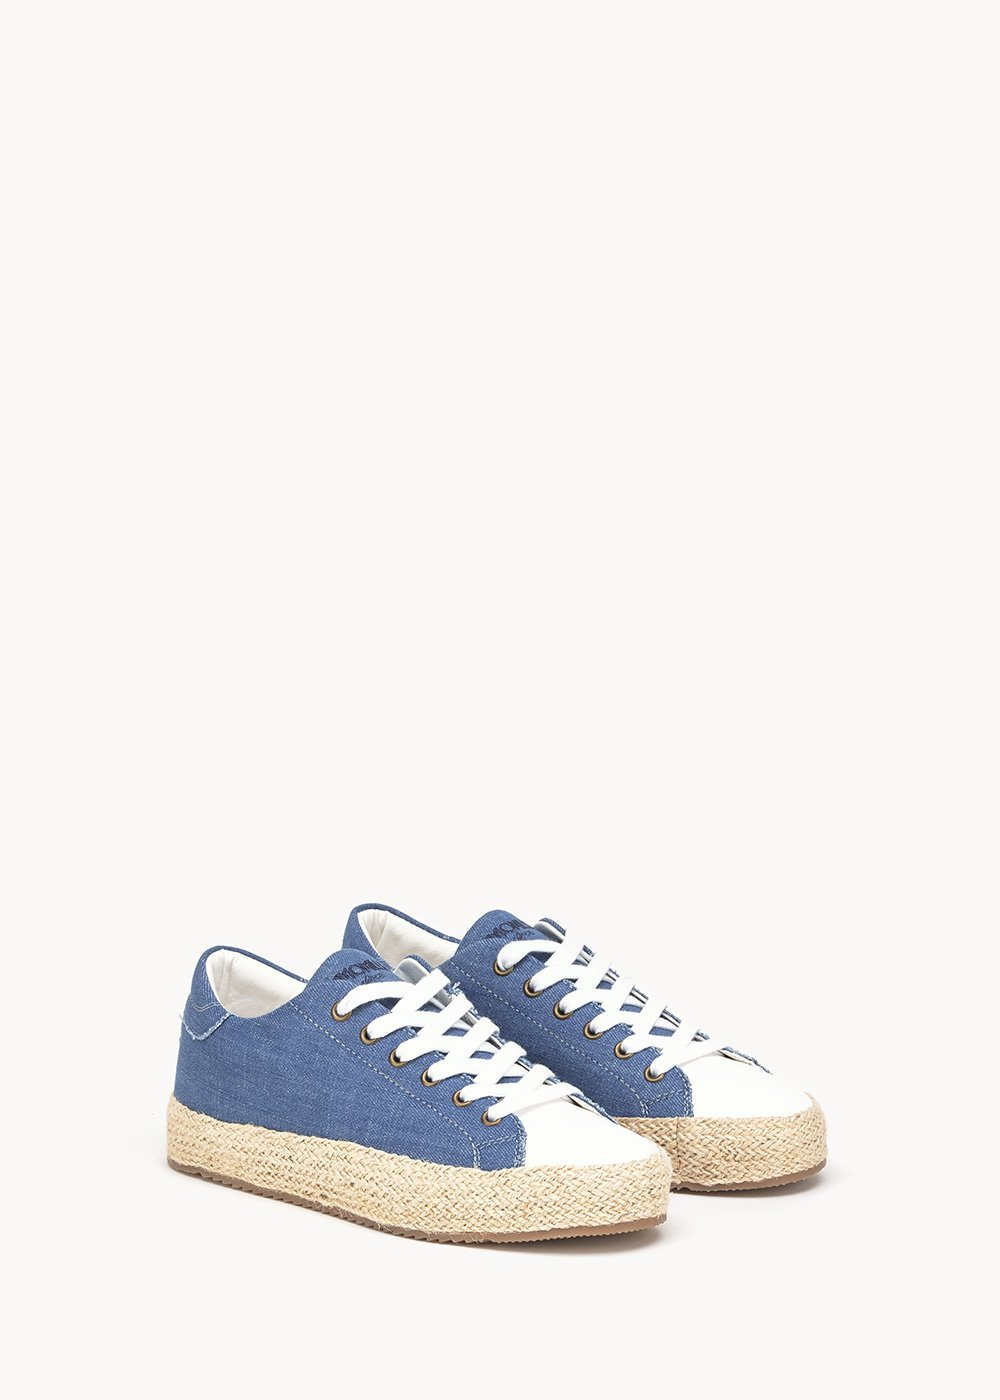 Scarpa Shelly in canvas - Medium Blue - Donna